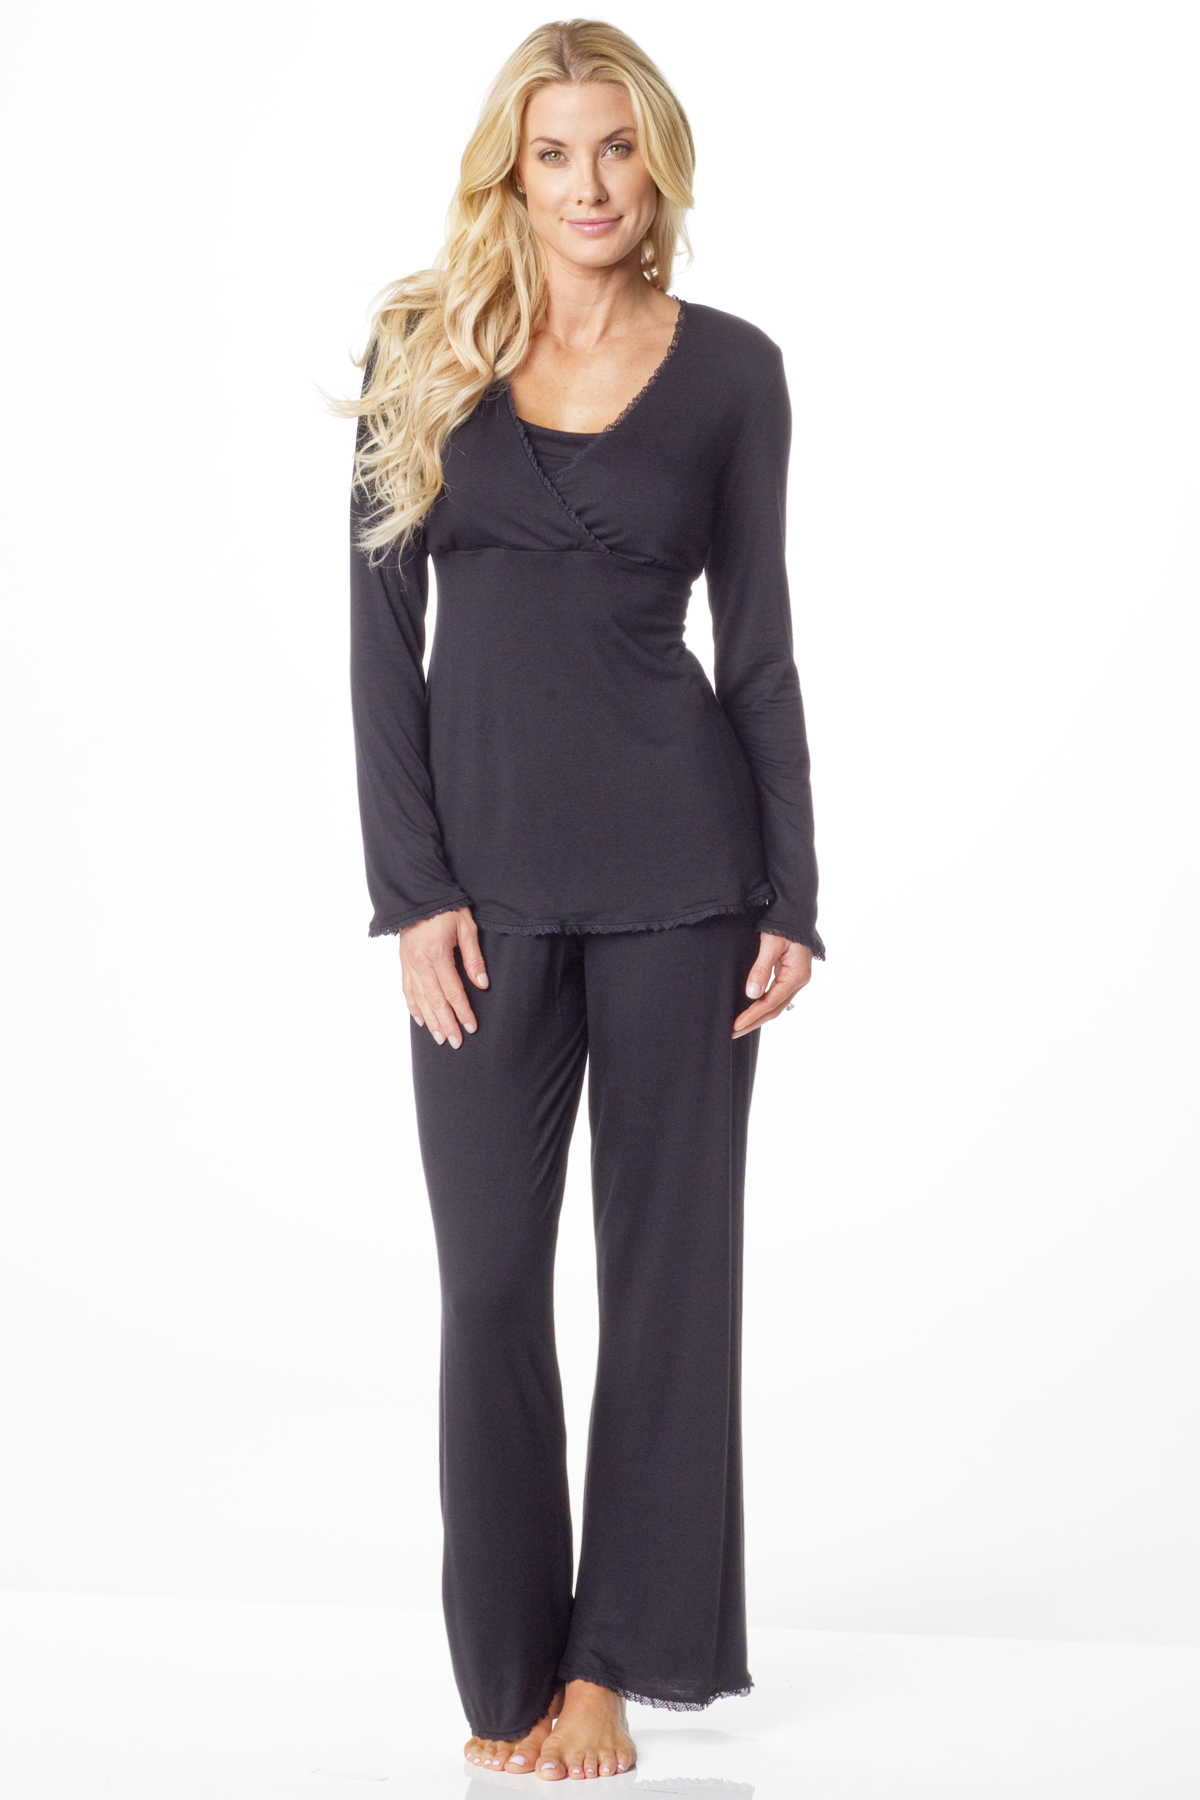 majamas-margo-nursing-pjs-black.jpg